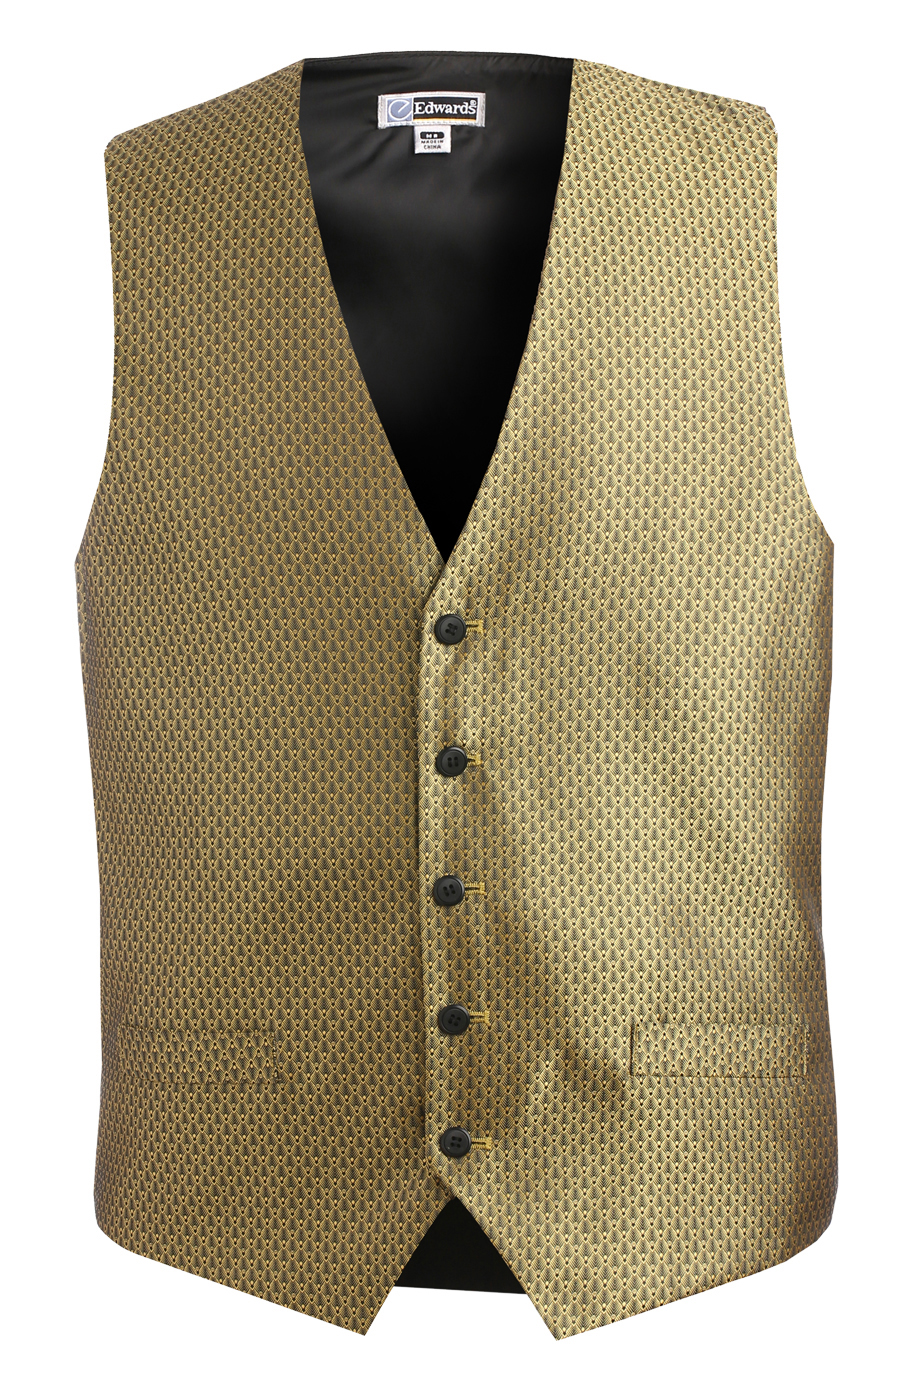 DIAMOND BROCADE VEST